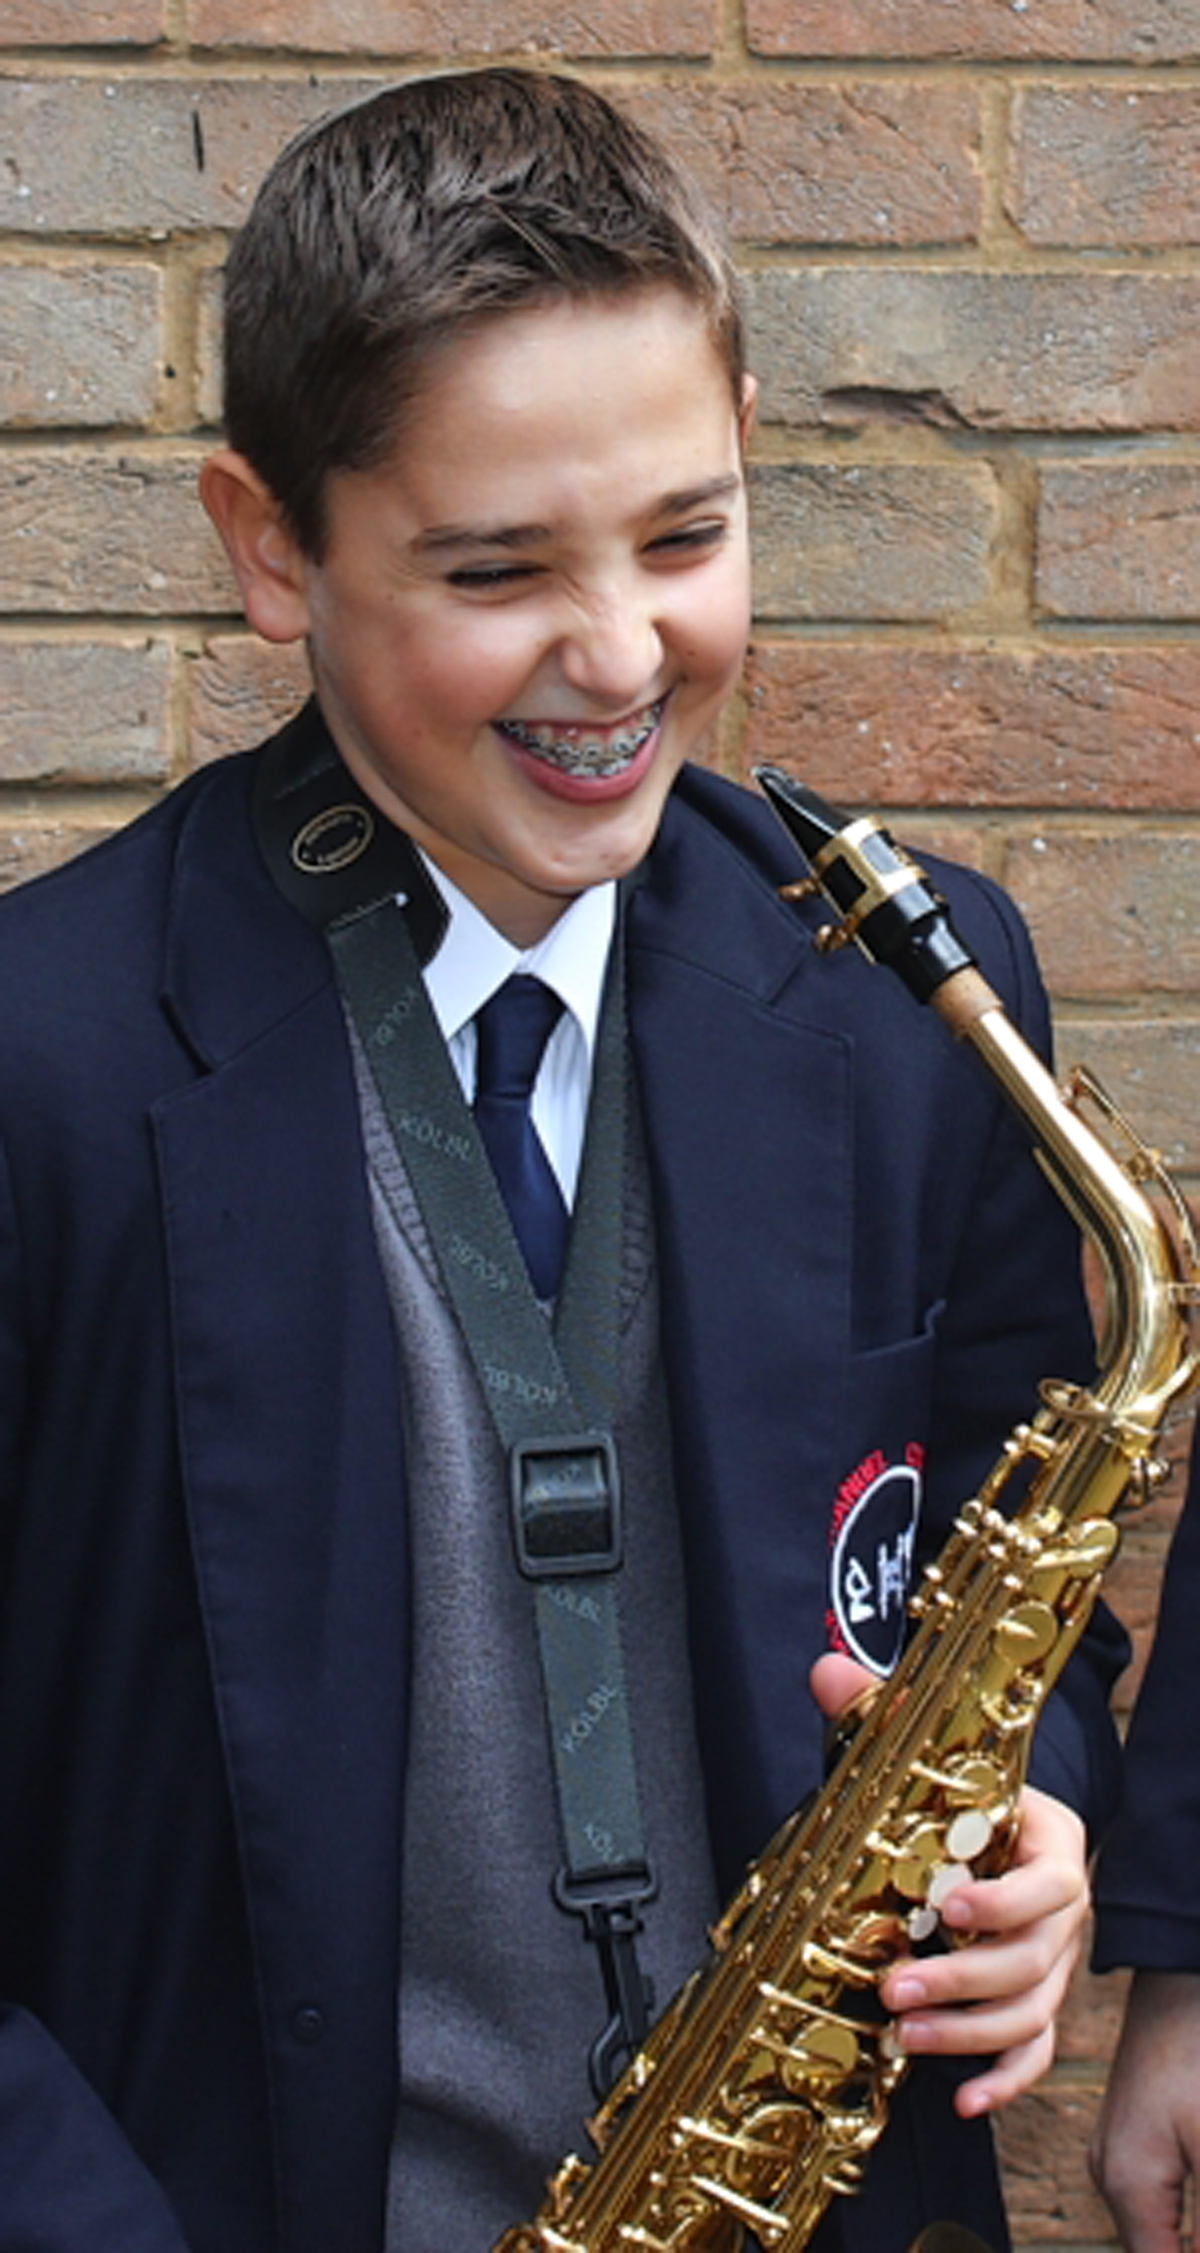 Young saxophonist into final of musician of the year competition